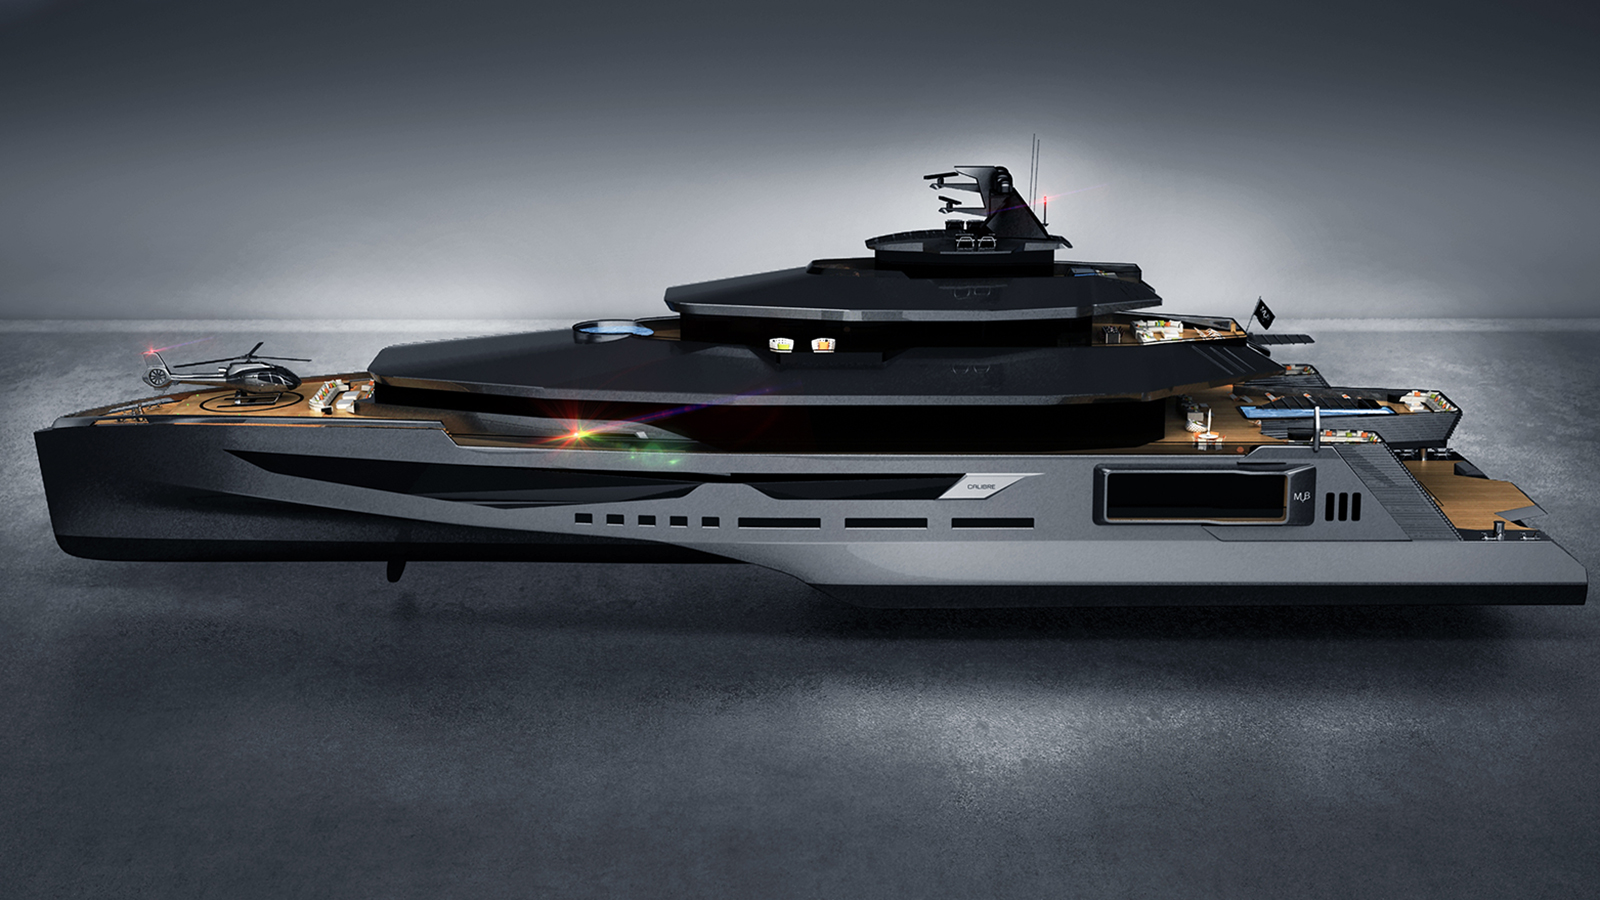 Calibre 102m Yacht Concept Hull